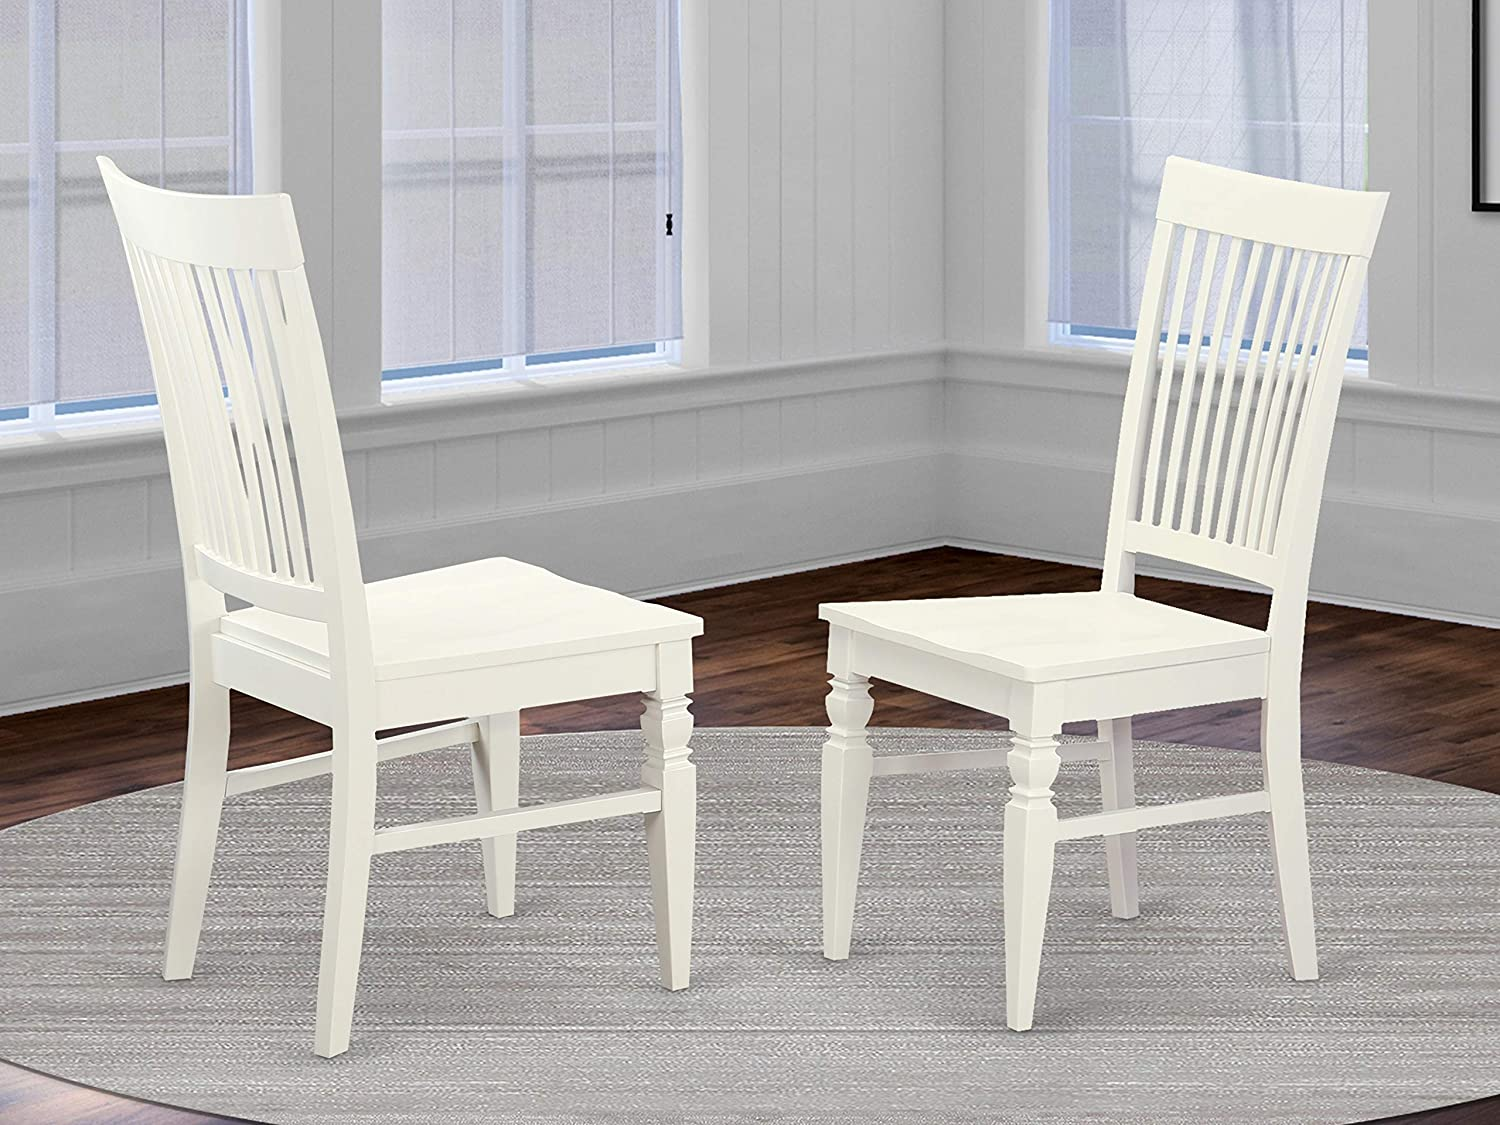 Weston Dining Wood Seat Dining Chair with Slatted Back in in Linen White Finish